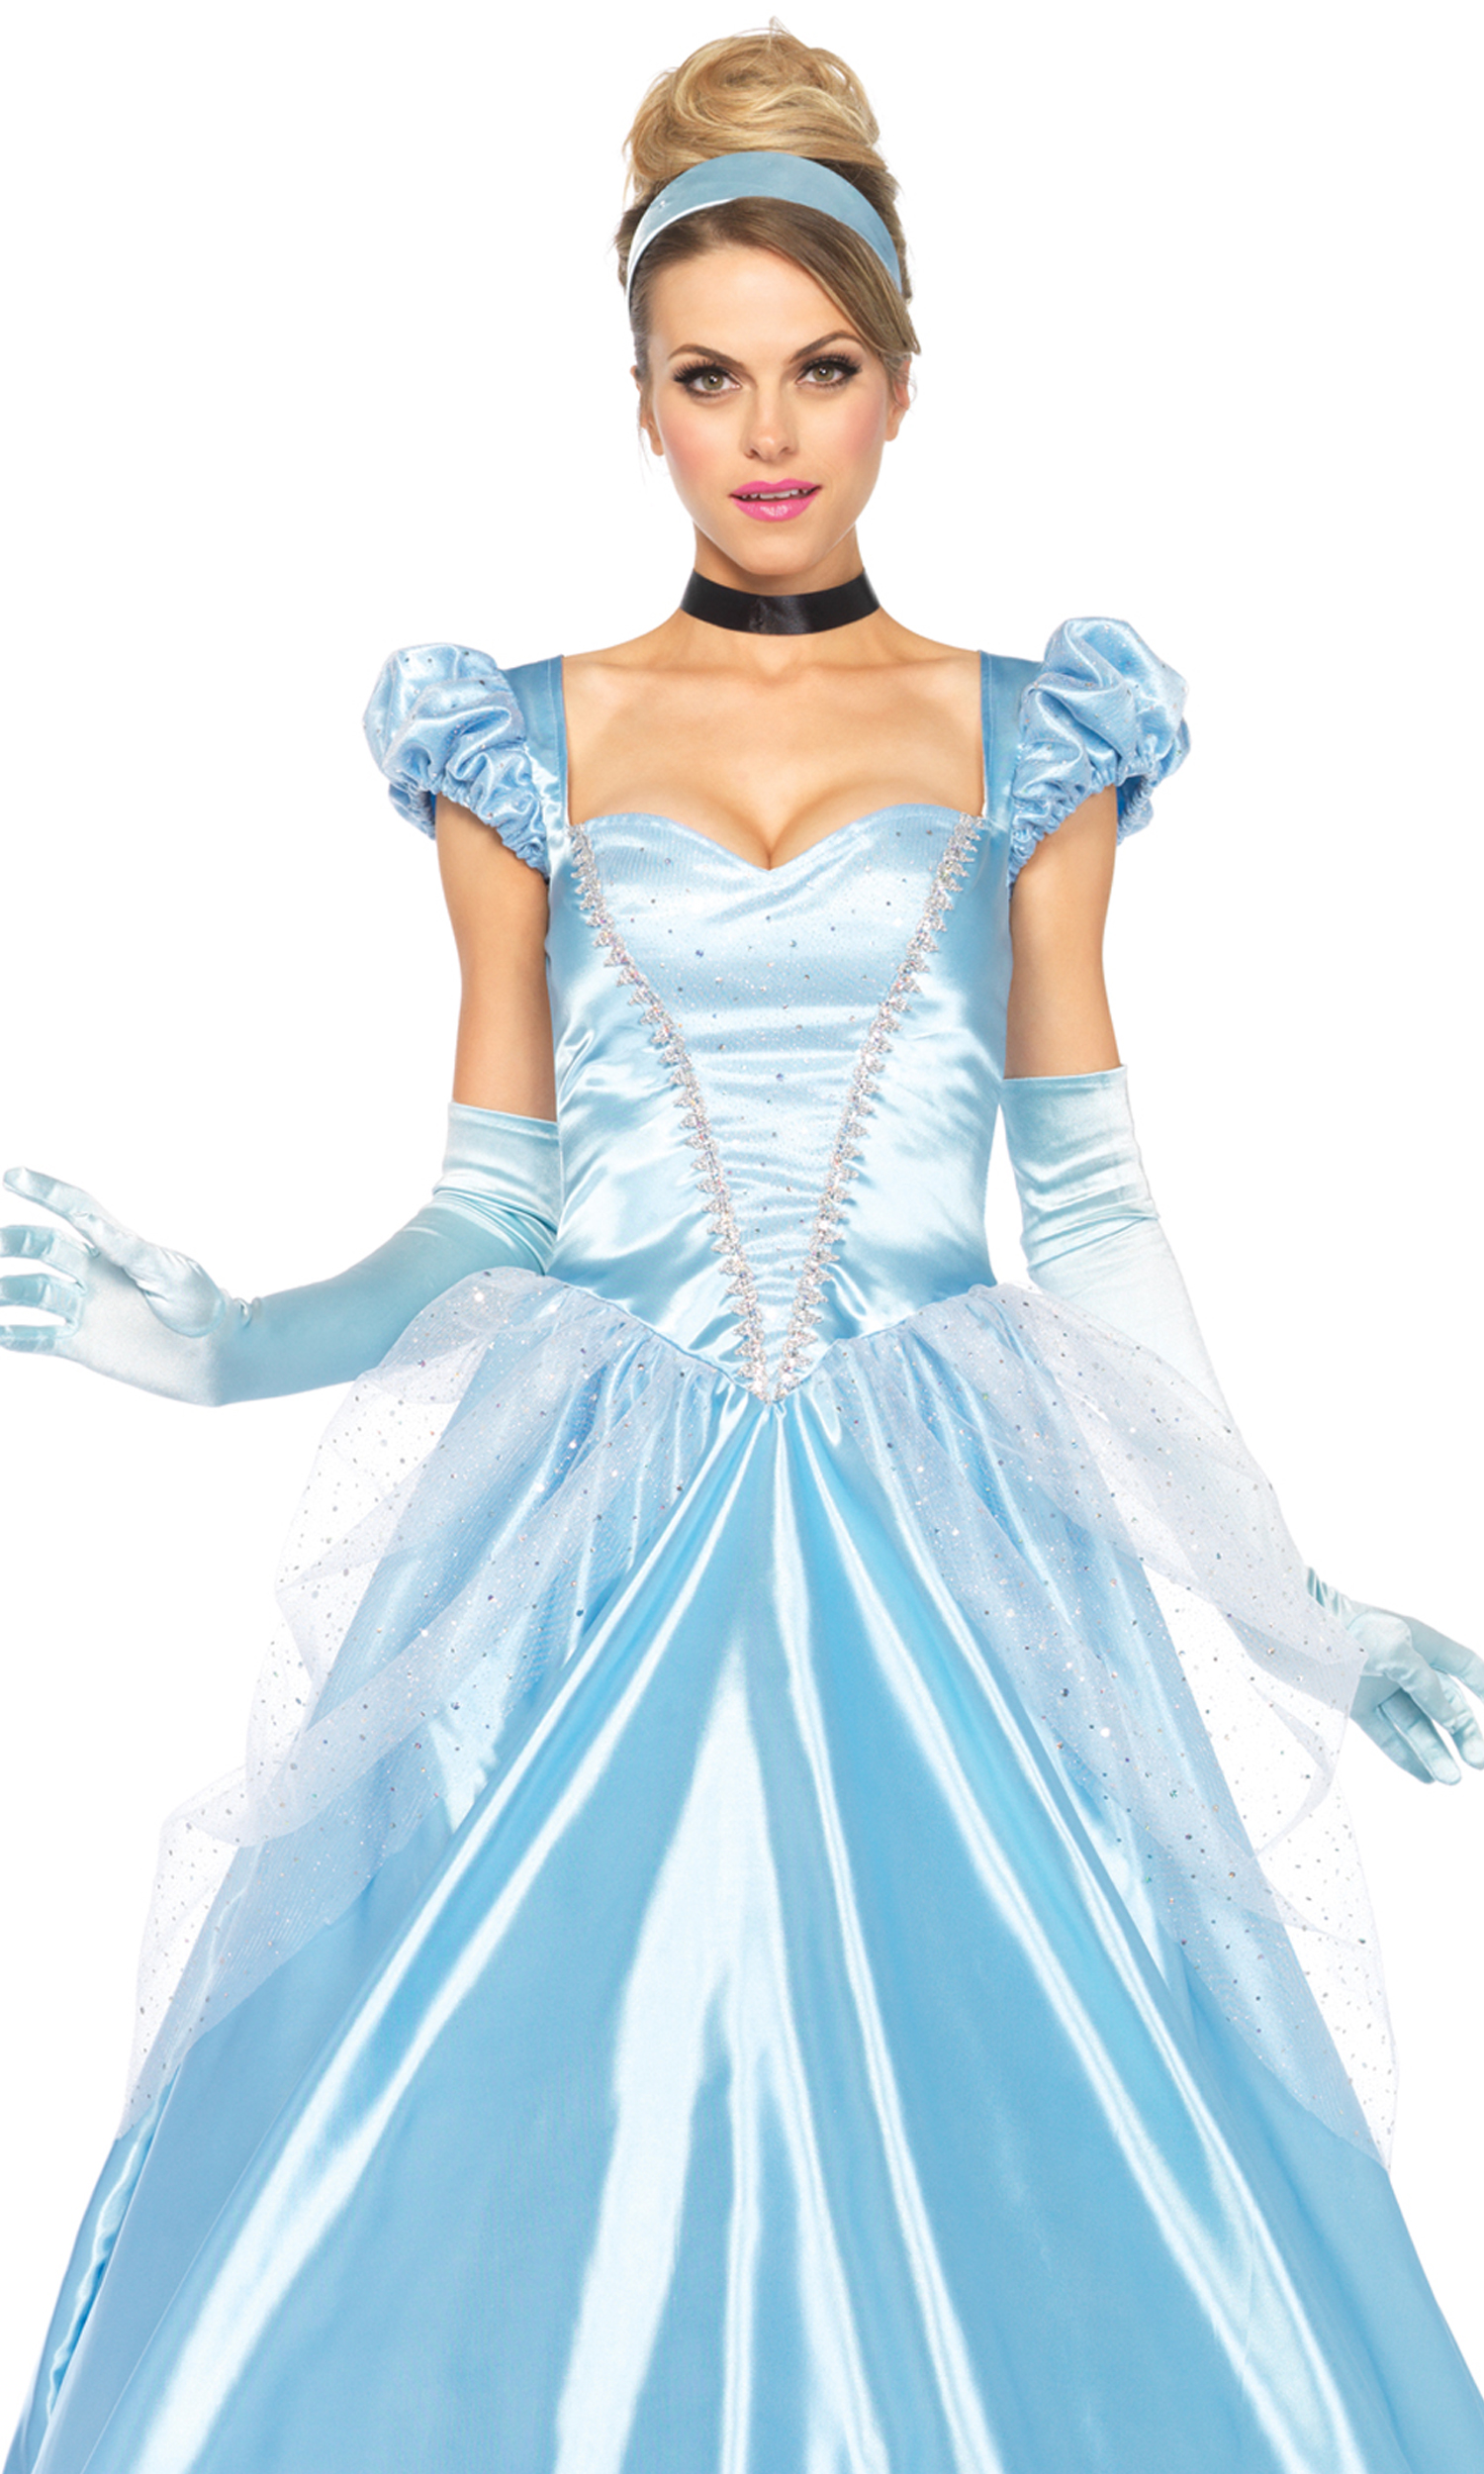 3PC Classic Cinderella Sexy Costume Long Satin Ball Gown